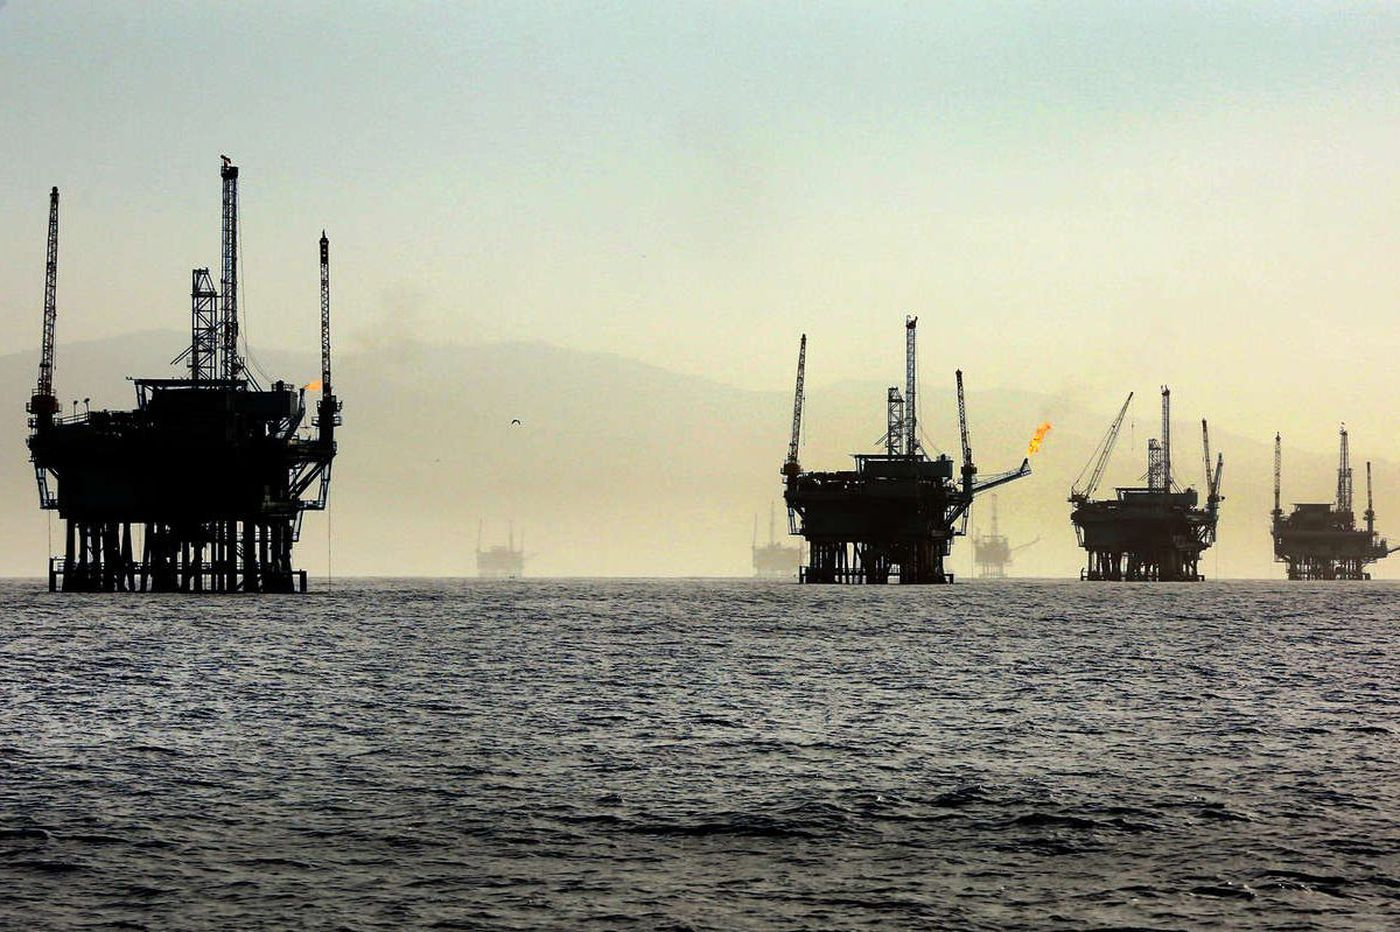 NJ sues feds to learn why Florida, and not NJ, was exempted from offshore oil drilling